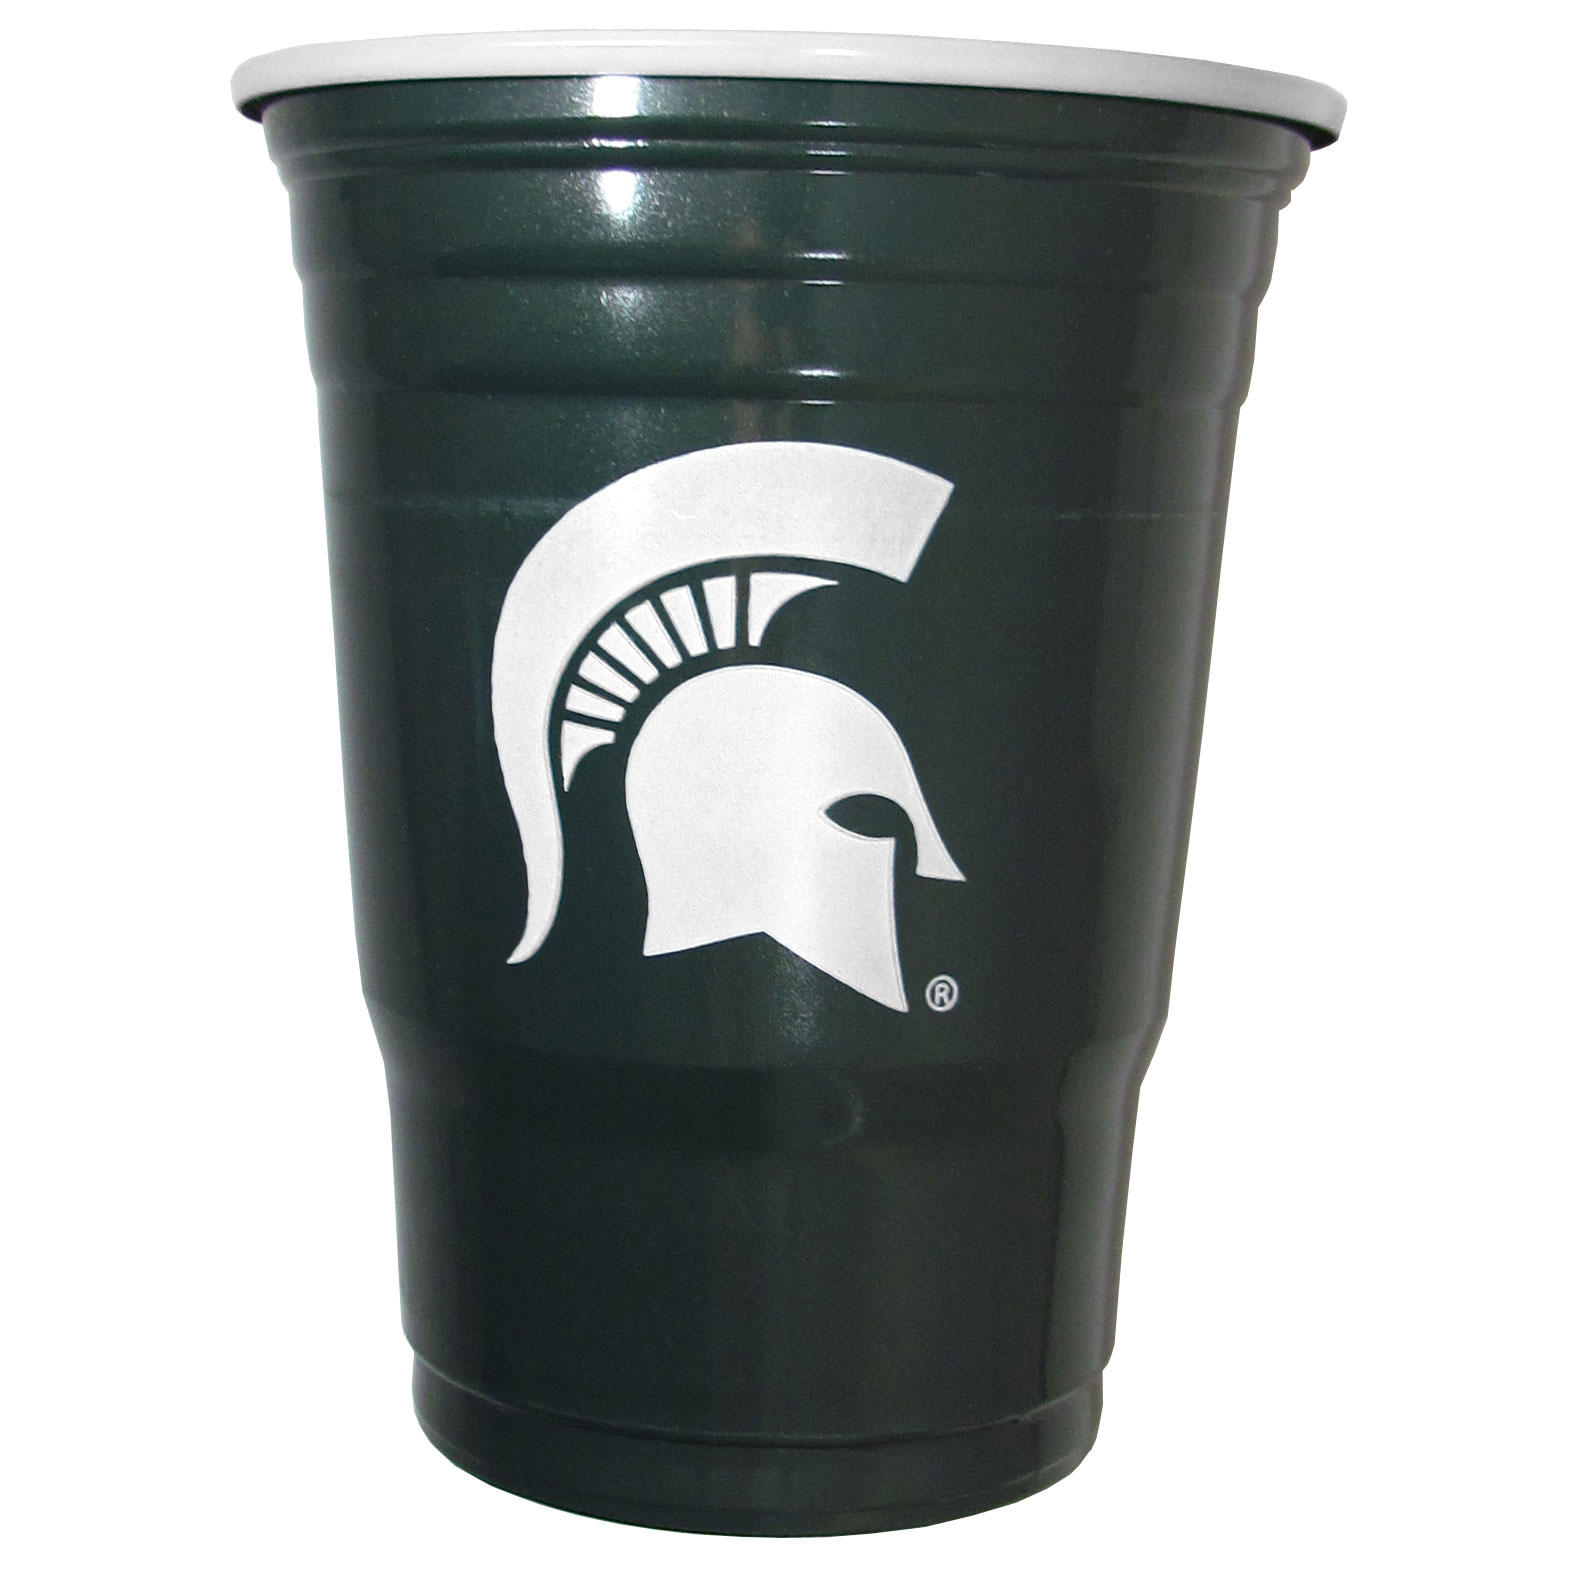 Michigan St. Spartans Plastic Game Day Cups 2 sleeves of 18 (36 Cups) - Our 18 ounce game day cups are what every tailgating or backyard events needs! The cups feature a big Michigan St. Spartans logo so you can show off your team pride. The popular 18 ounce size is perfect for drinks or ping pong balls! 2 sleeves of 18 cups, 36 cups in total.